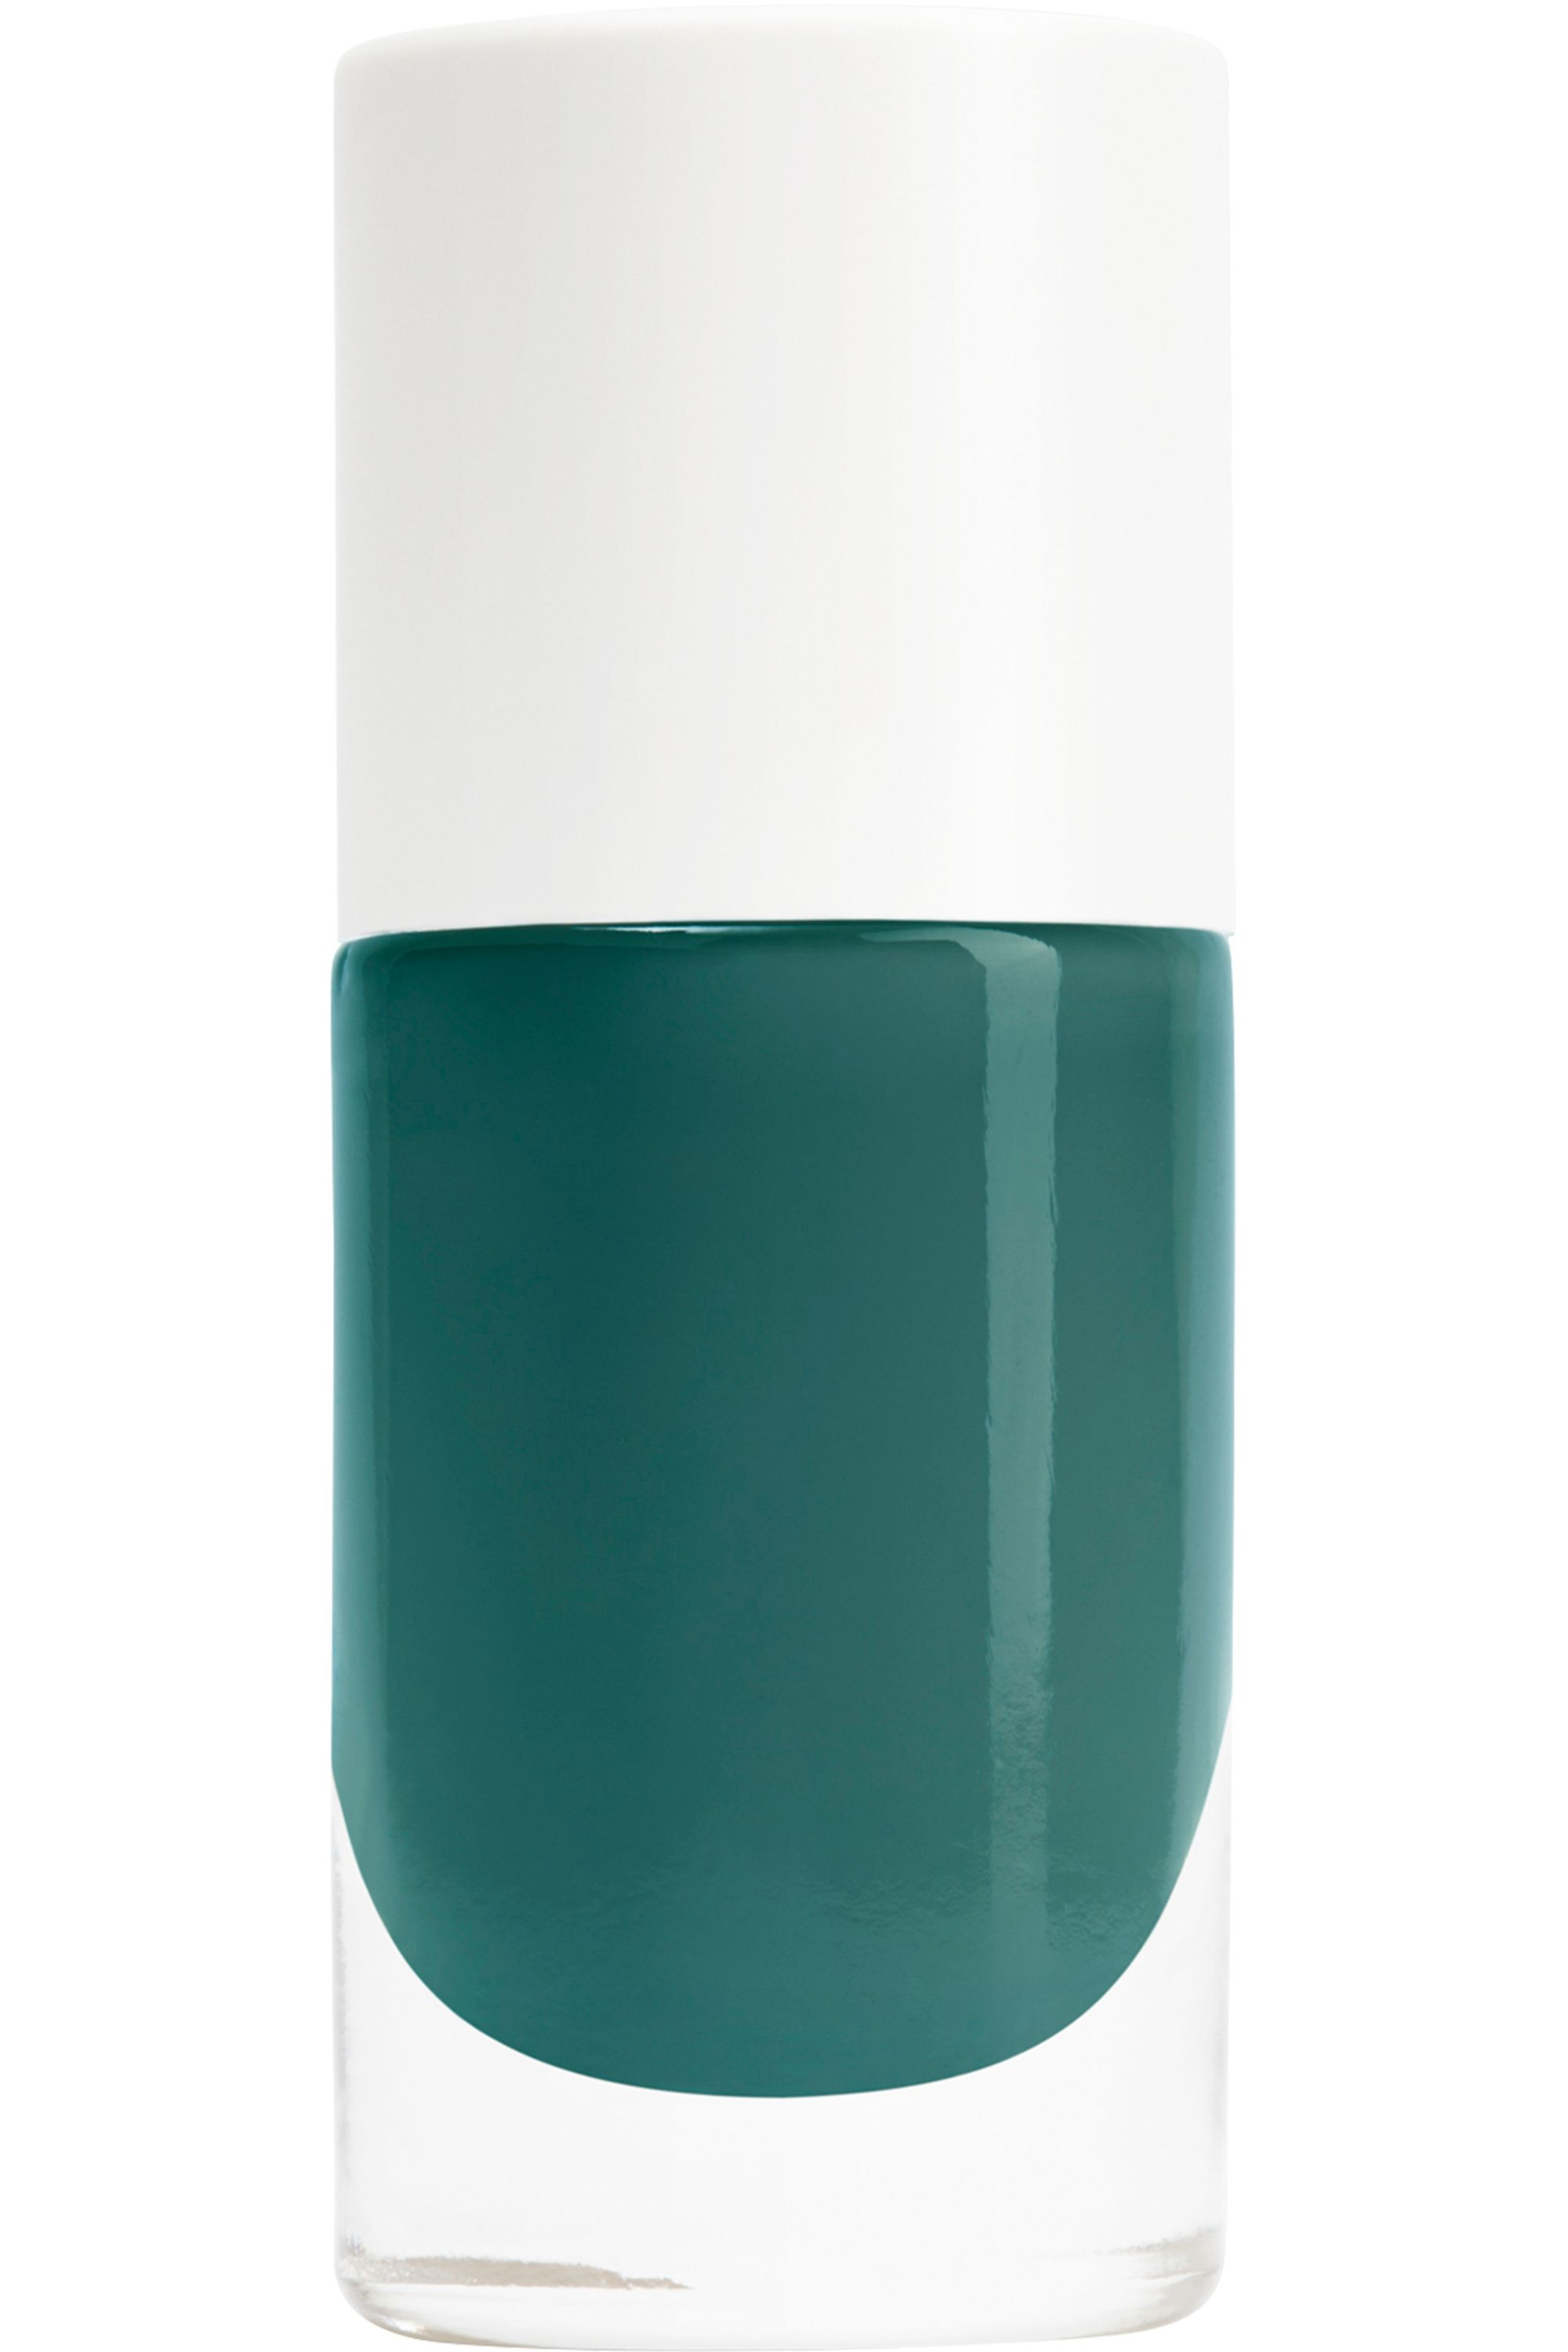 Blissim : Nailmatic - Vernis à ongles Pure Color - Pure Color Miky